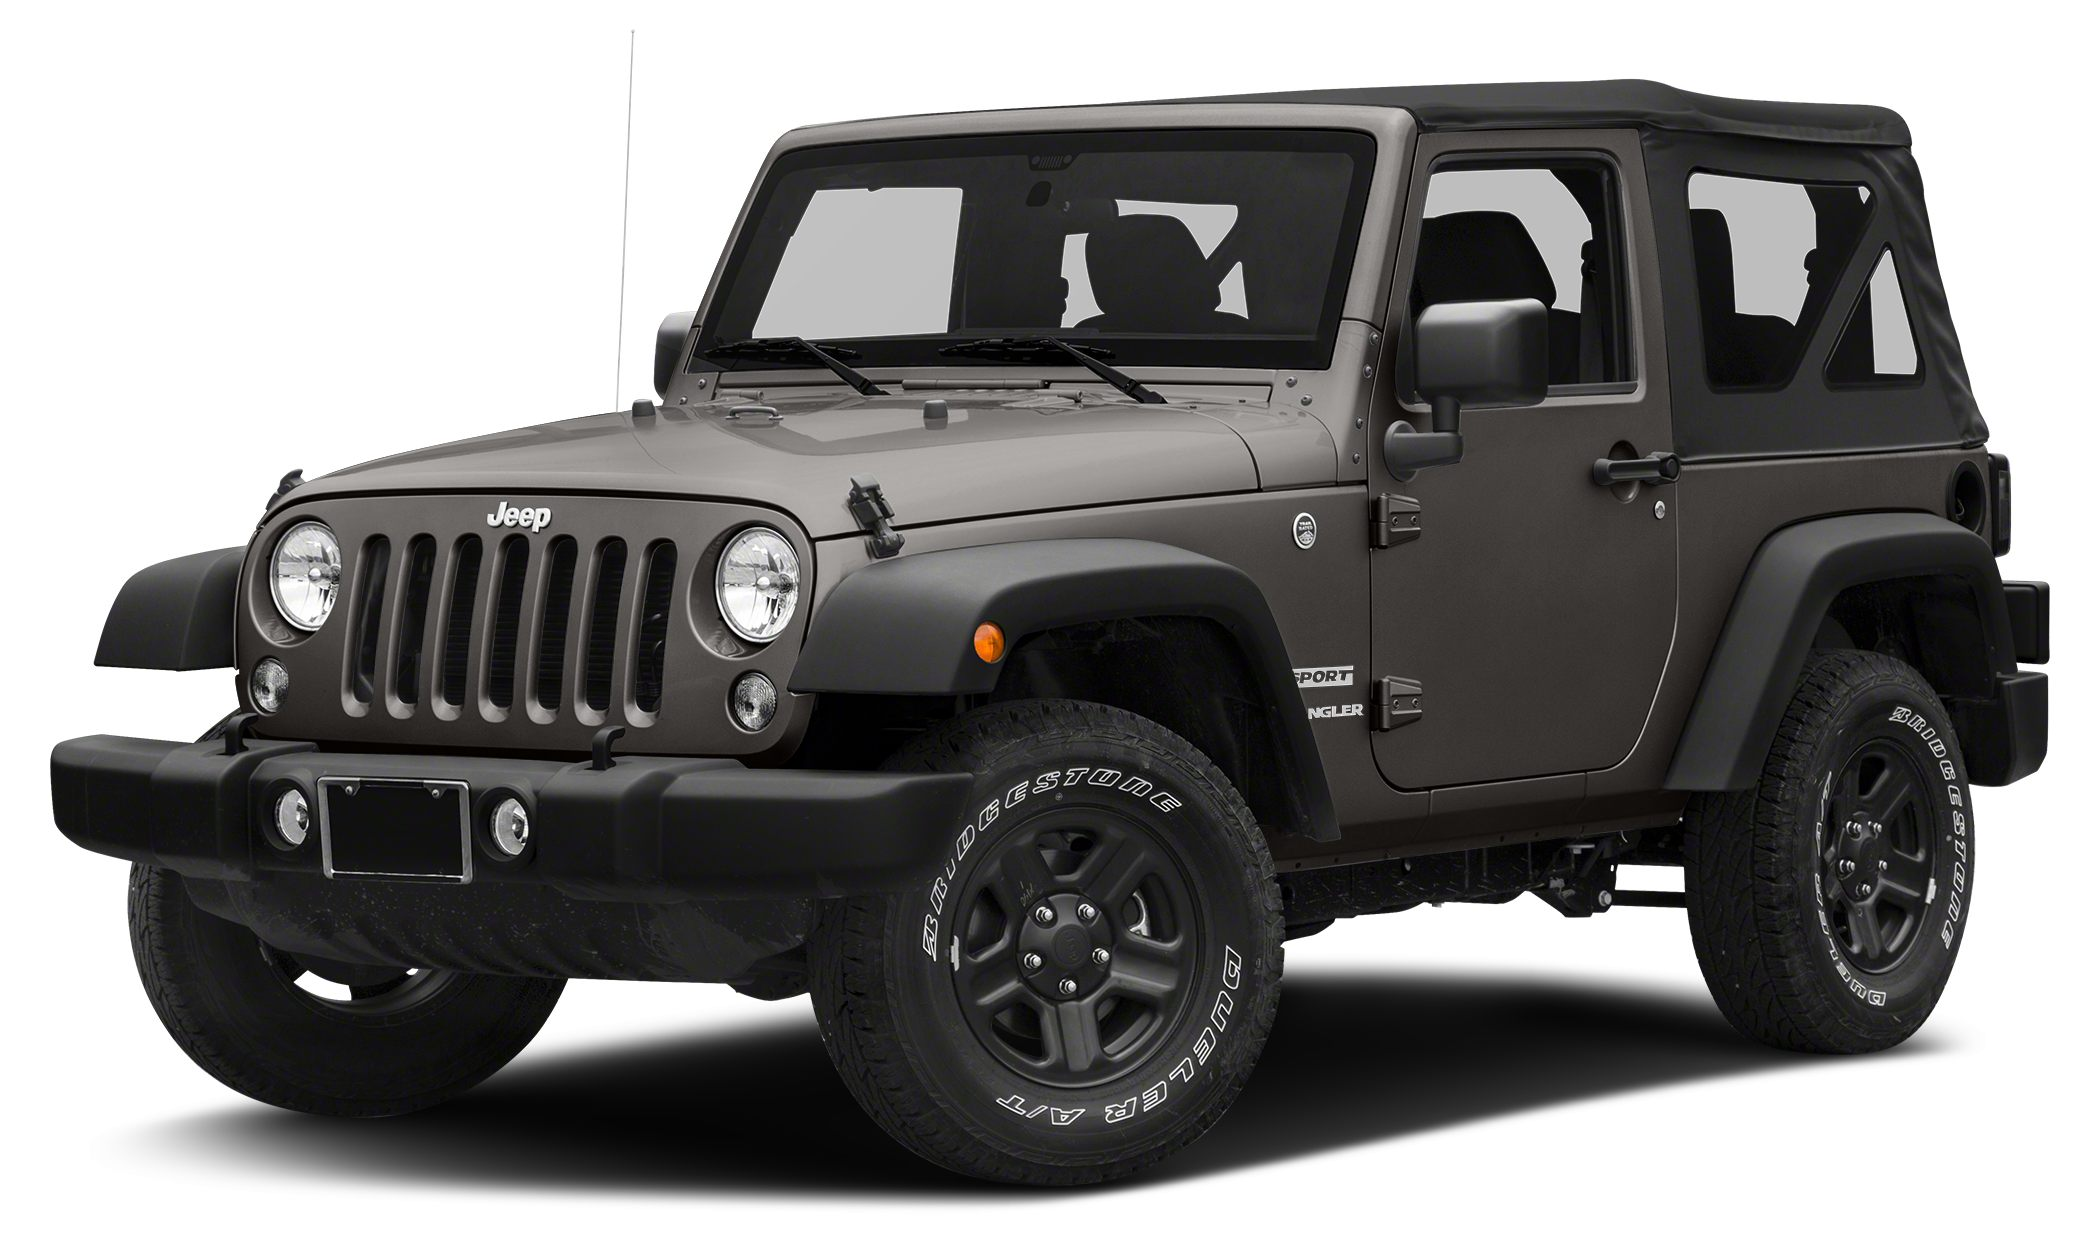 new and used jeep wranglers for sale in spartanburg south carolina sc. Black Bedroom Furniture Sets. Home Design Ideas